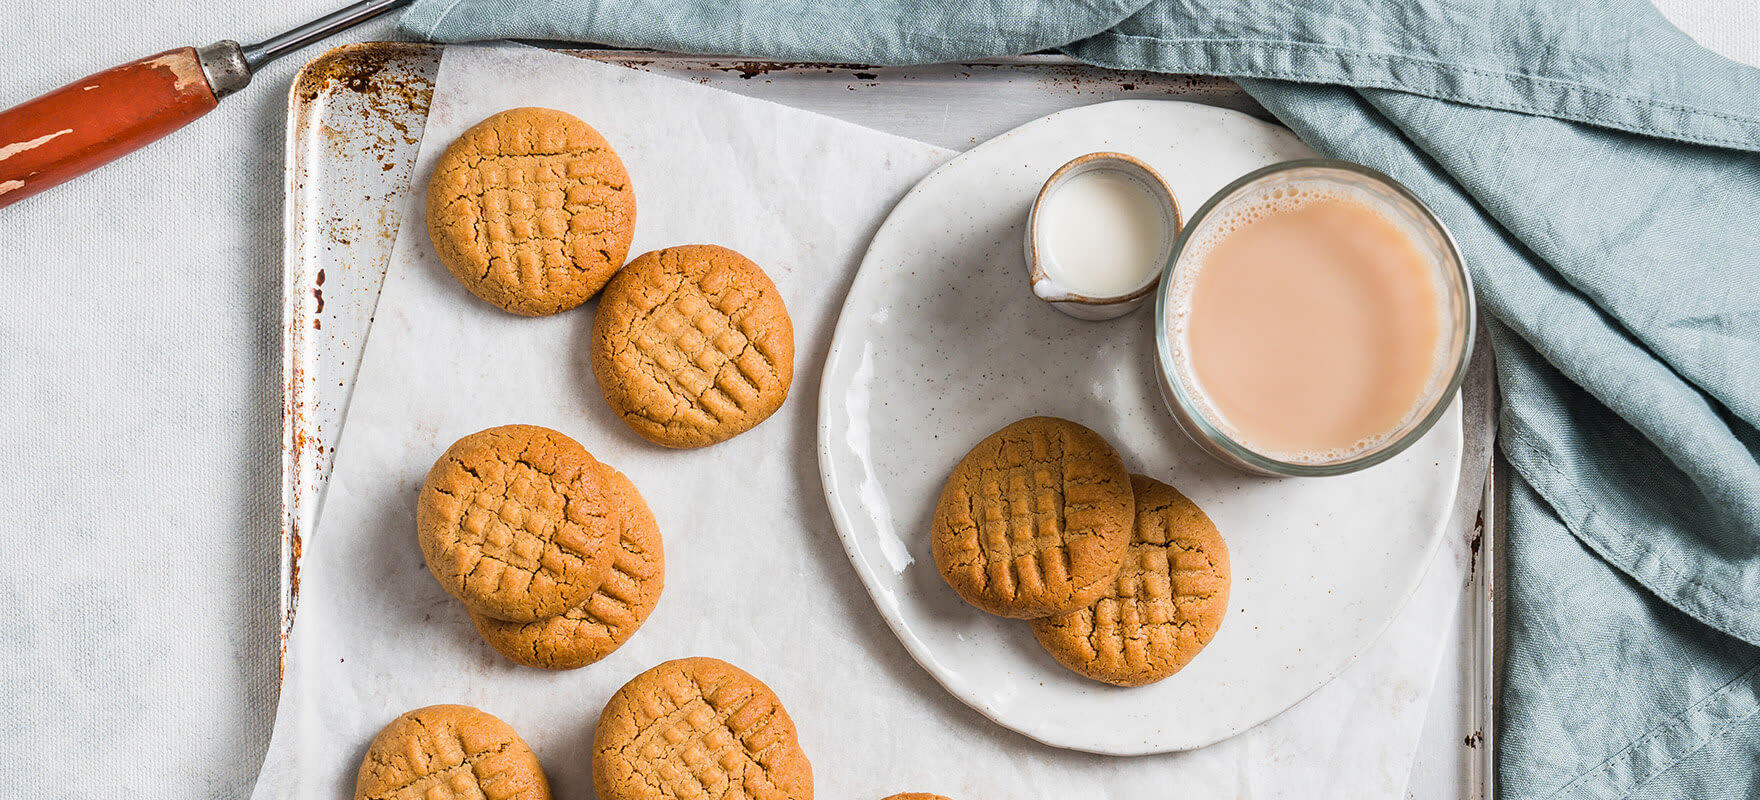 Quick & easy peanut butter cookies image 1